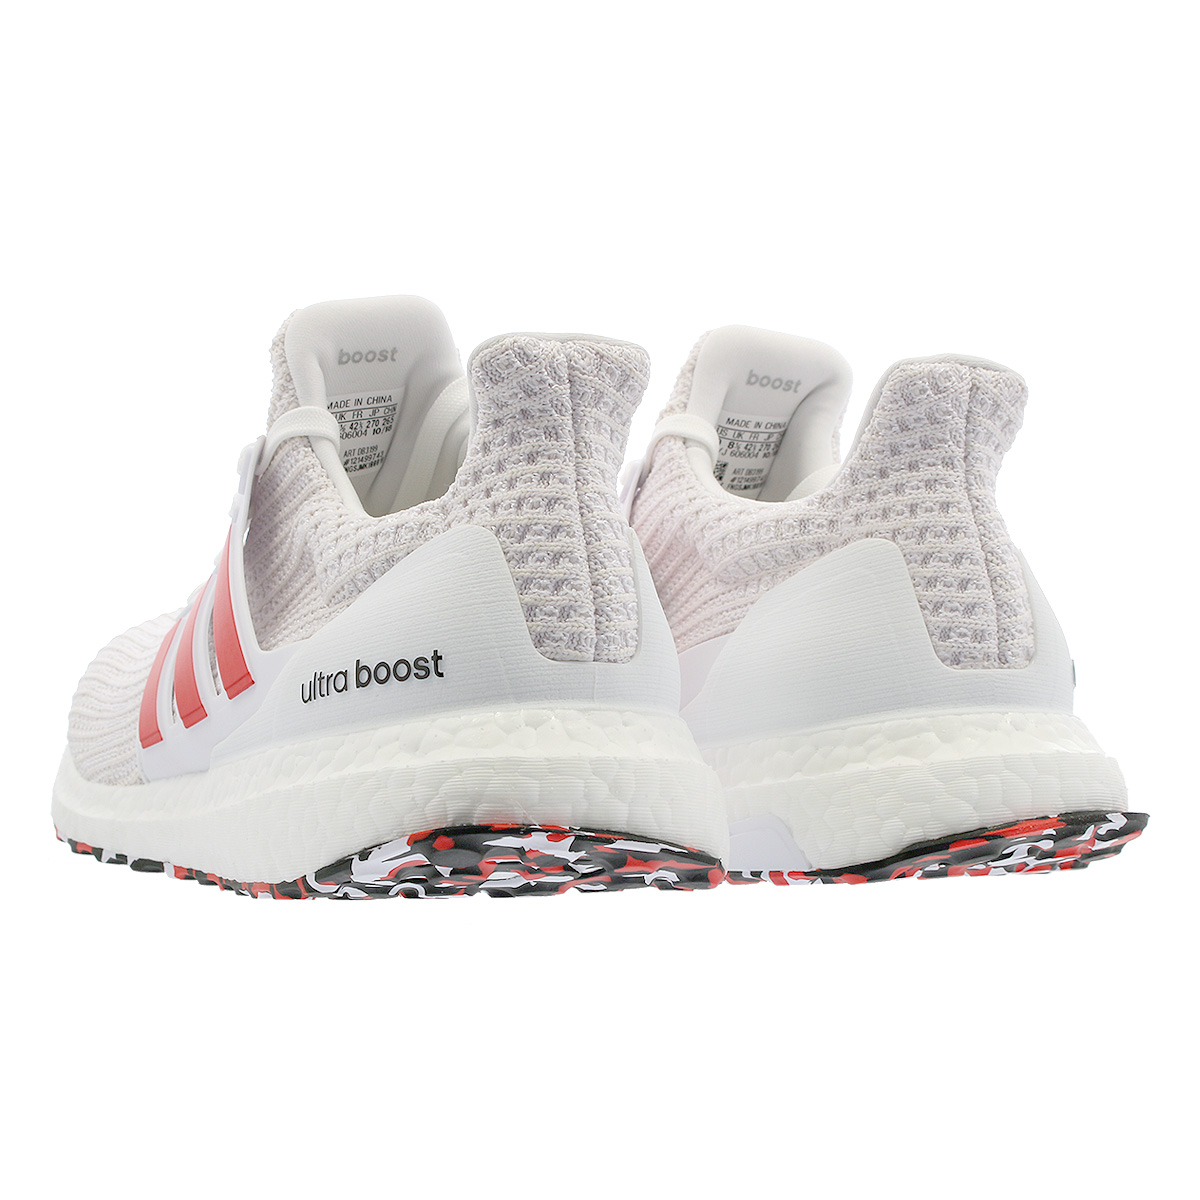 sports shoes d5791 66e81 adidas ULTRA BOOST Adidas ultra boost RUNNING WHITE/ACTIVE RED/CHALK WHITE  db3199